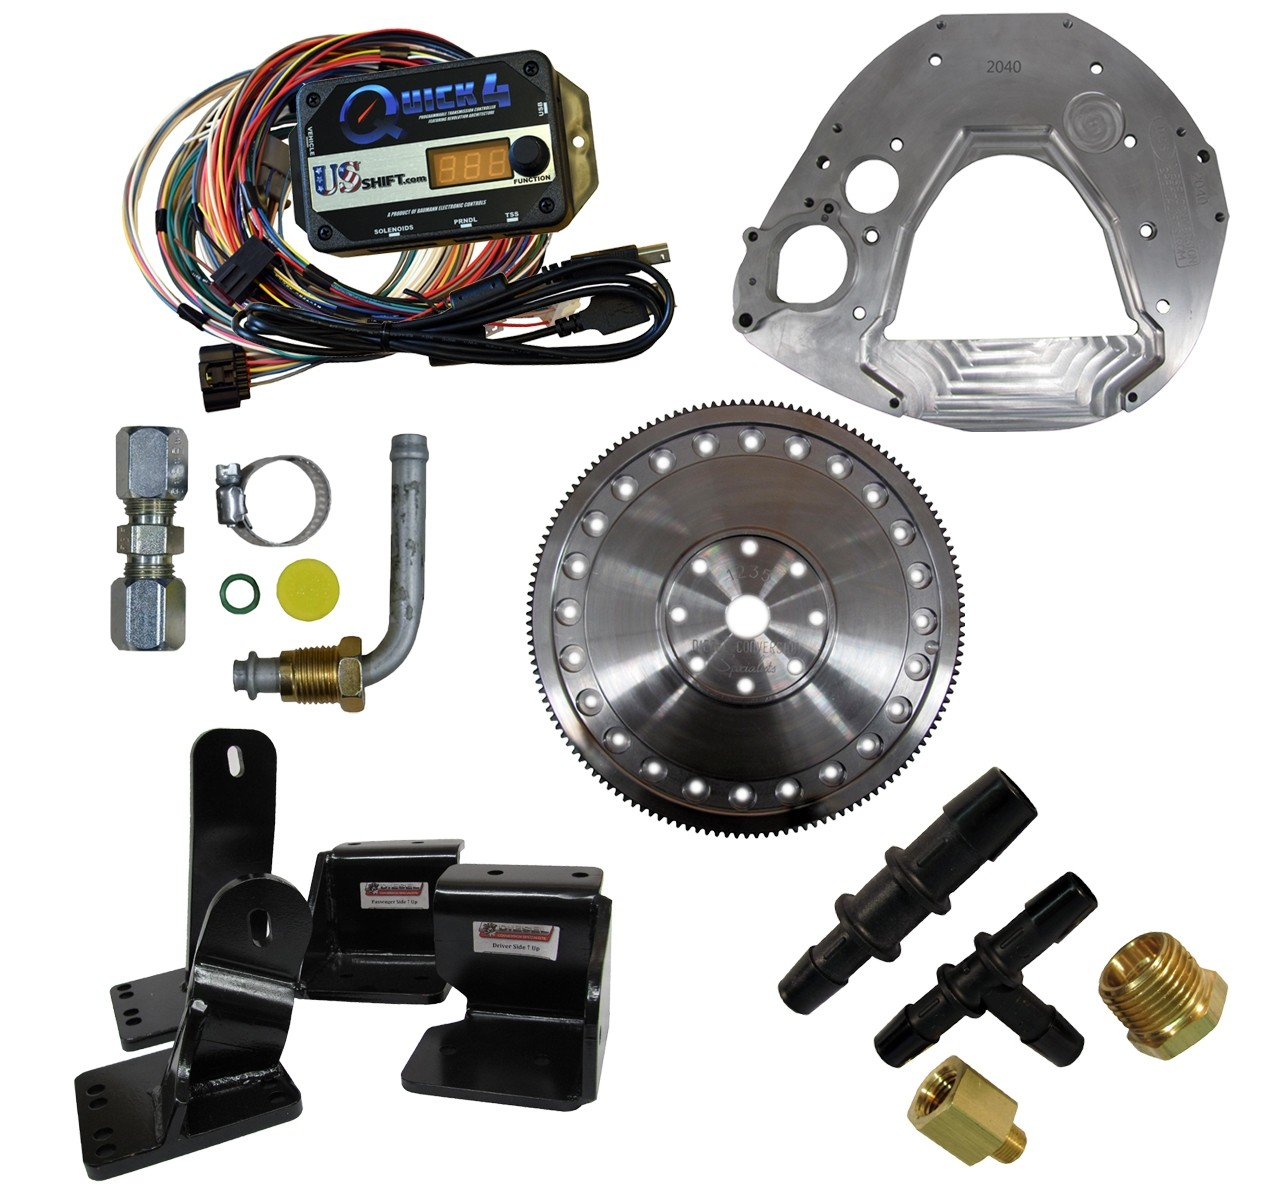 hight resolution of getting started kit ford f 150 300 302 351w e4od 4bt cummins